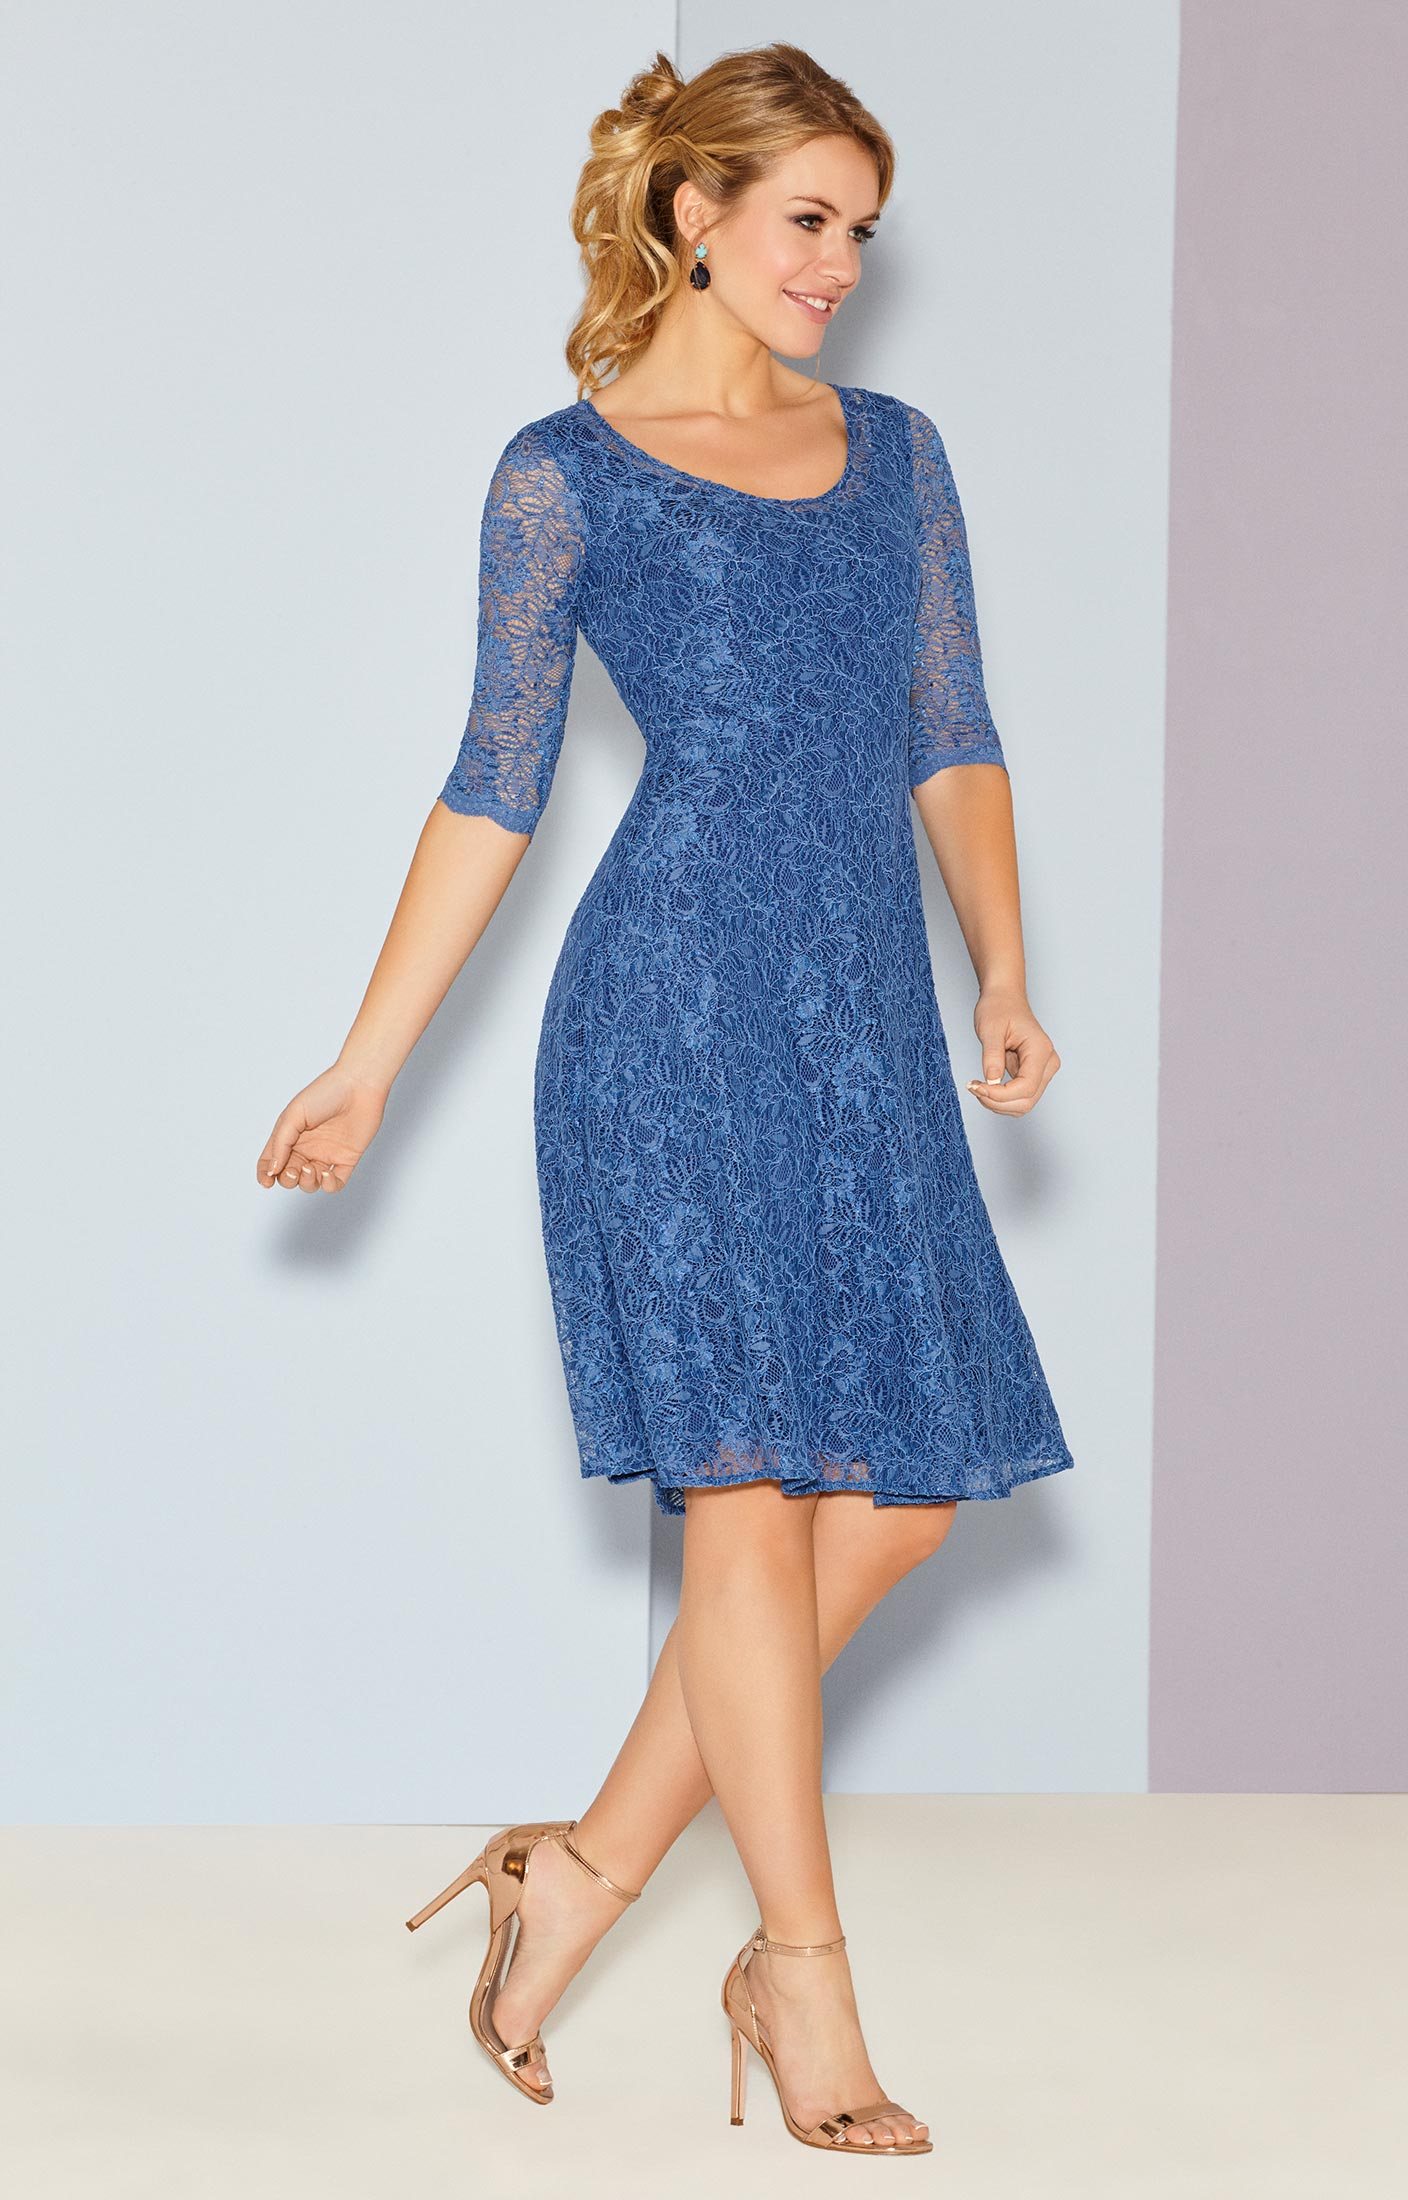 Arabella Dress Short Riviera Blue - Wedding Dresses, Evening Wear ...